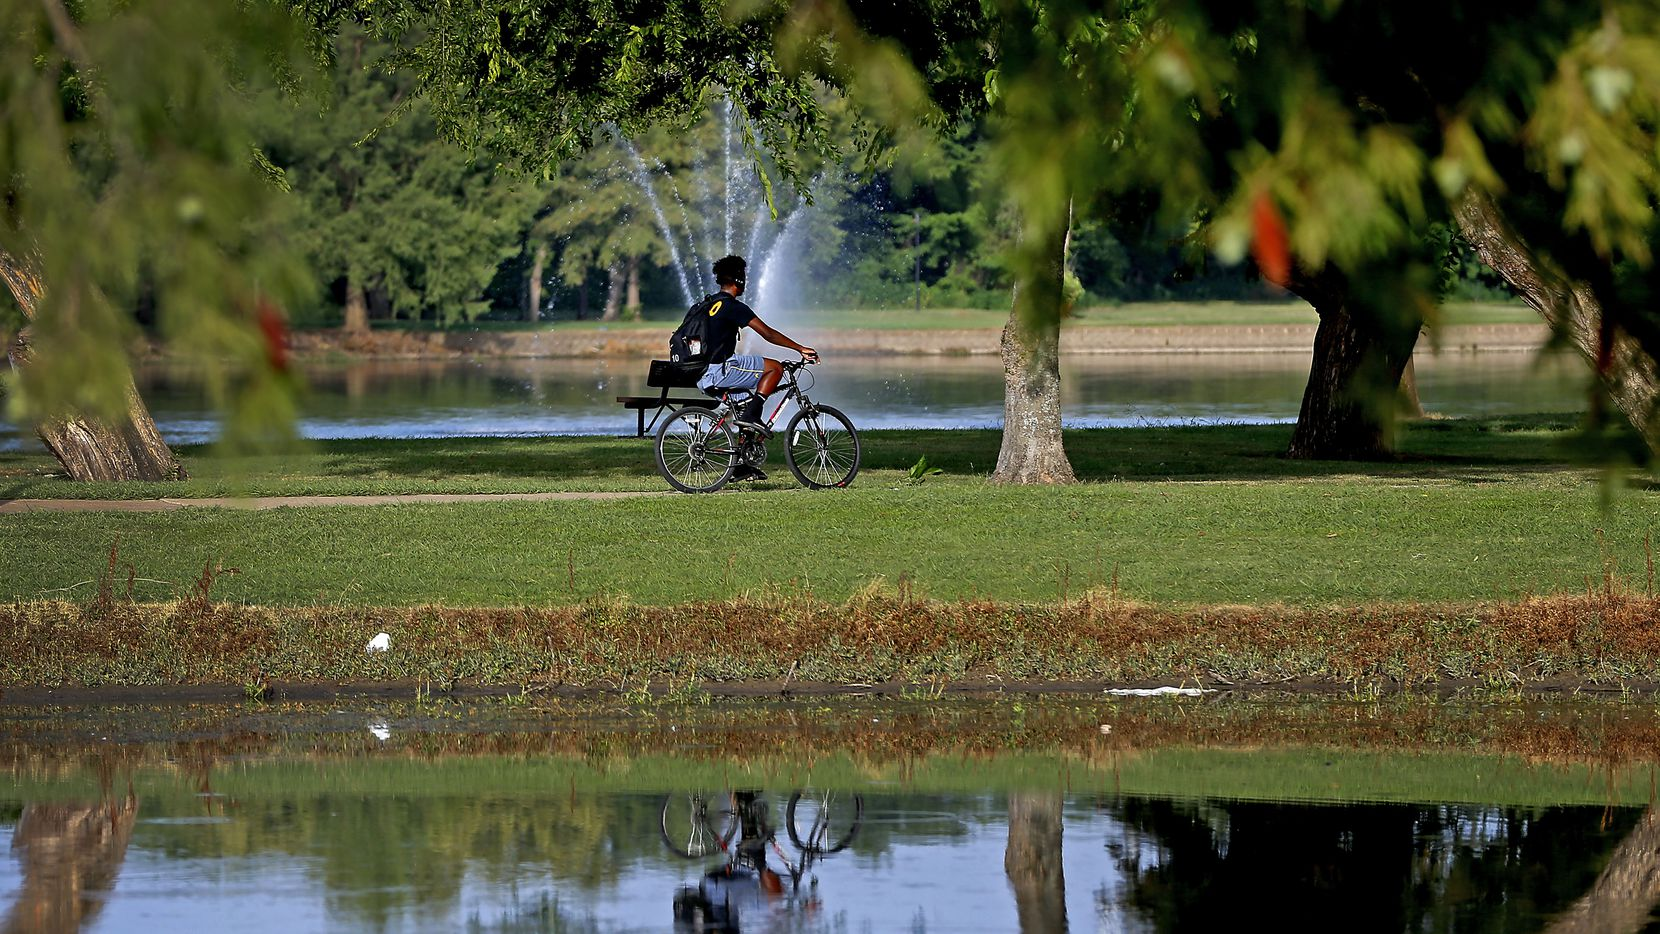 A man rides a bicycle at Towne Lake Recreation Area in McKinney, Texas, Tuesday, July 17, 2018. (Jae S. Lee/The Dallas Morning News)